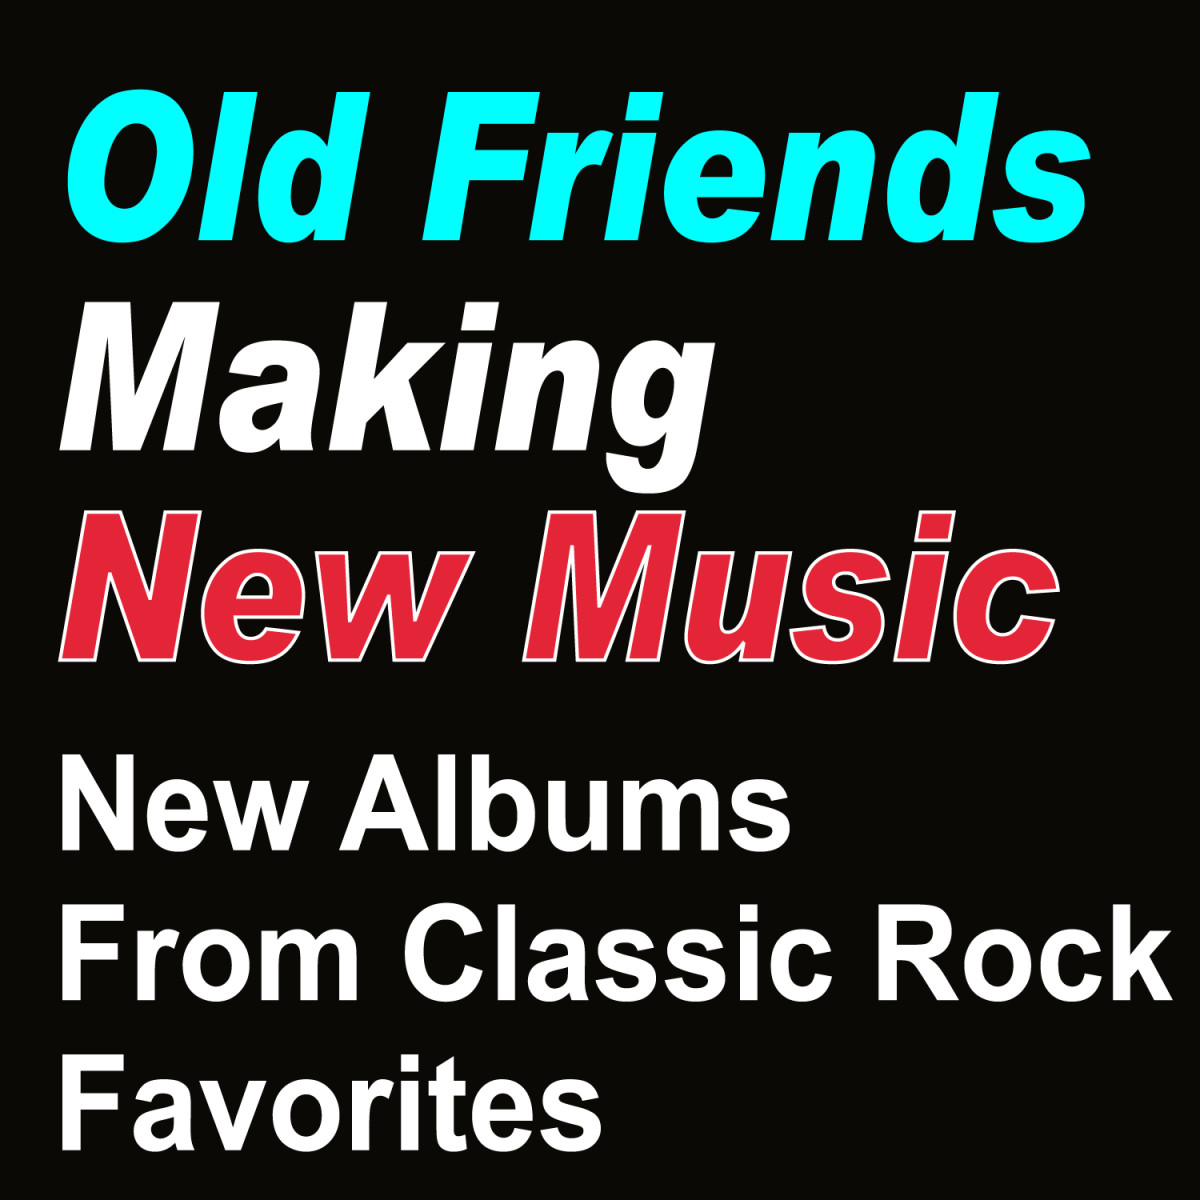 Old Friends Making New Music: New Albums From Classic Rock Favorites